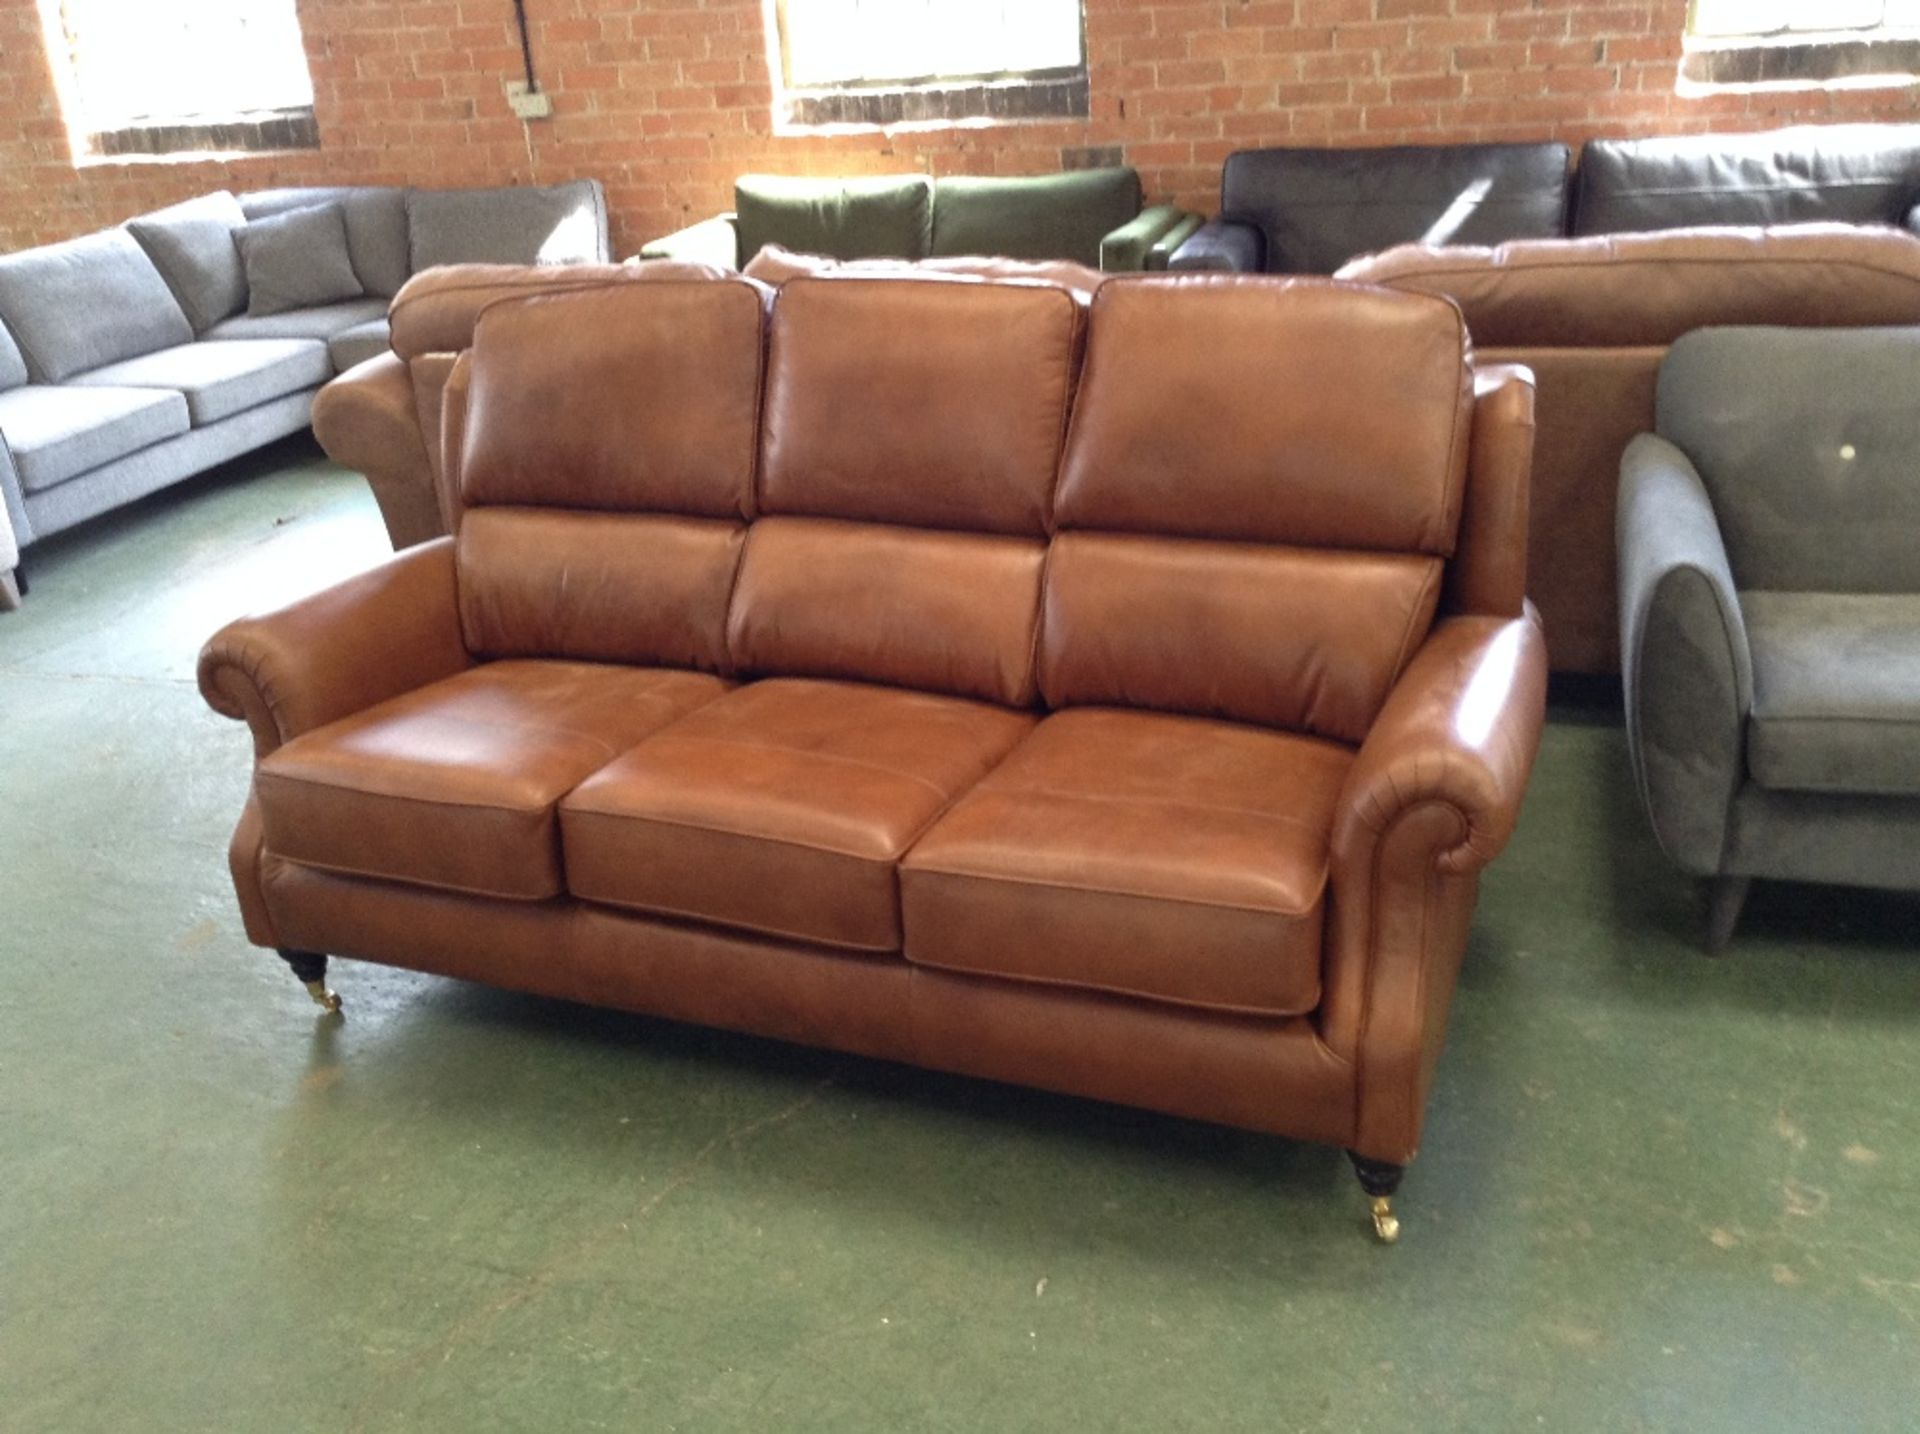 Lot 38 - BROWN LEATHER HIGH BACK 3 SEATER SOFA (SCUFFED ON